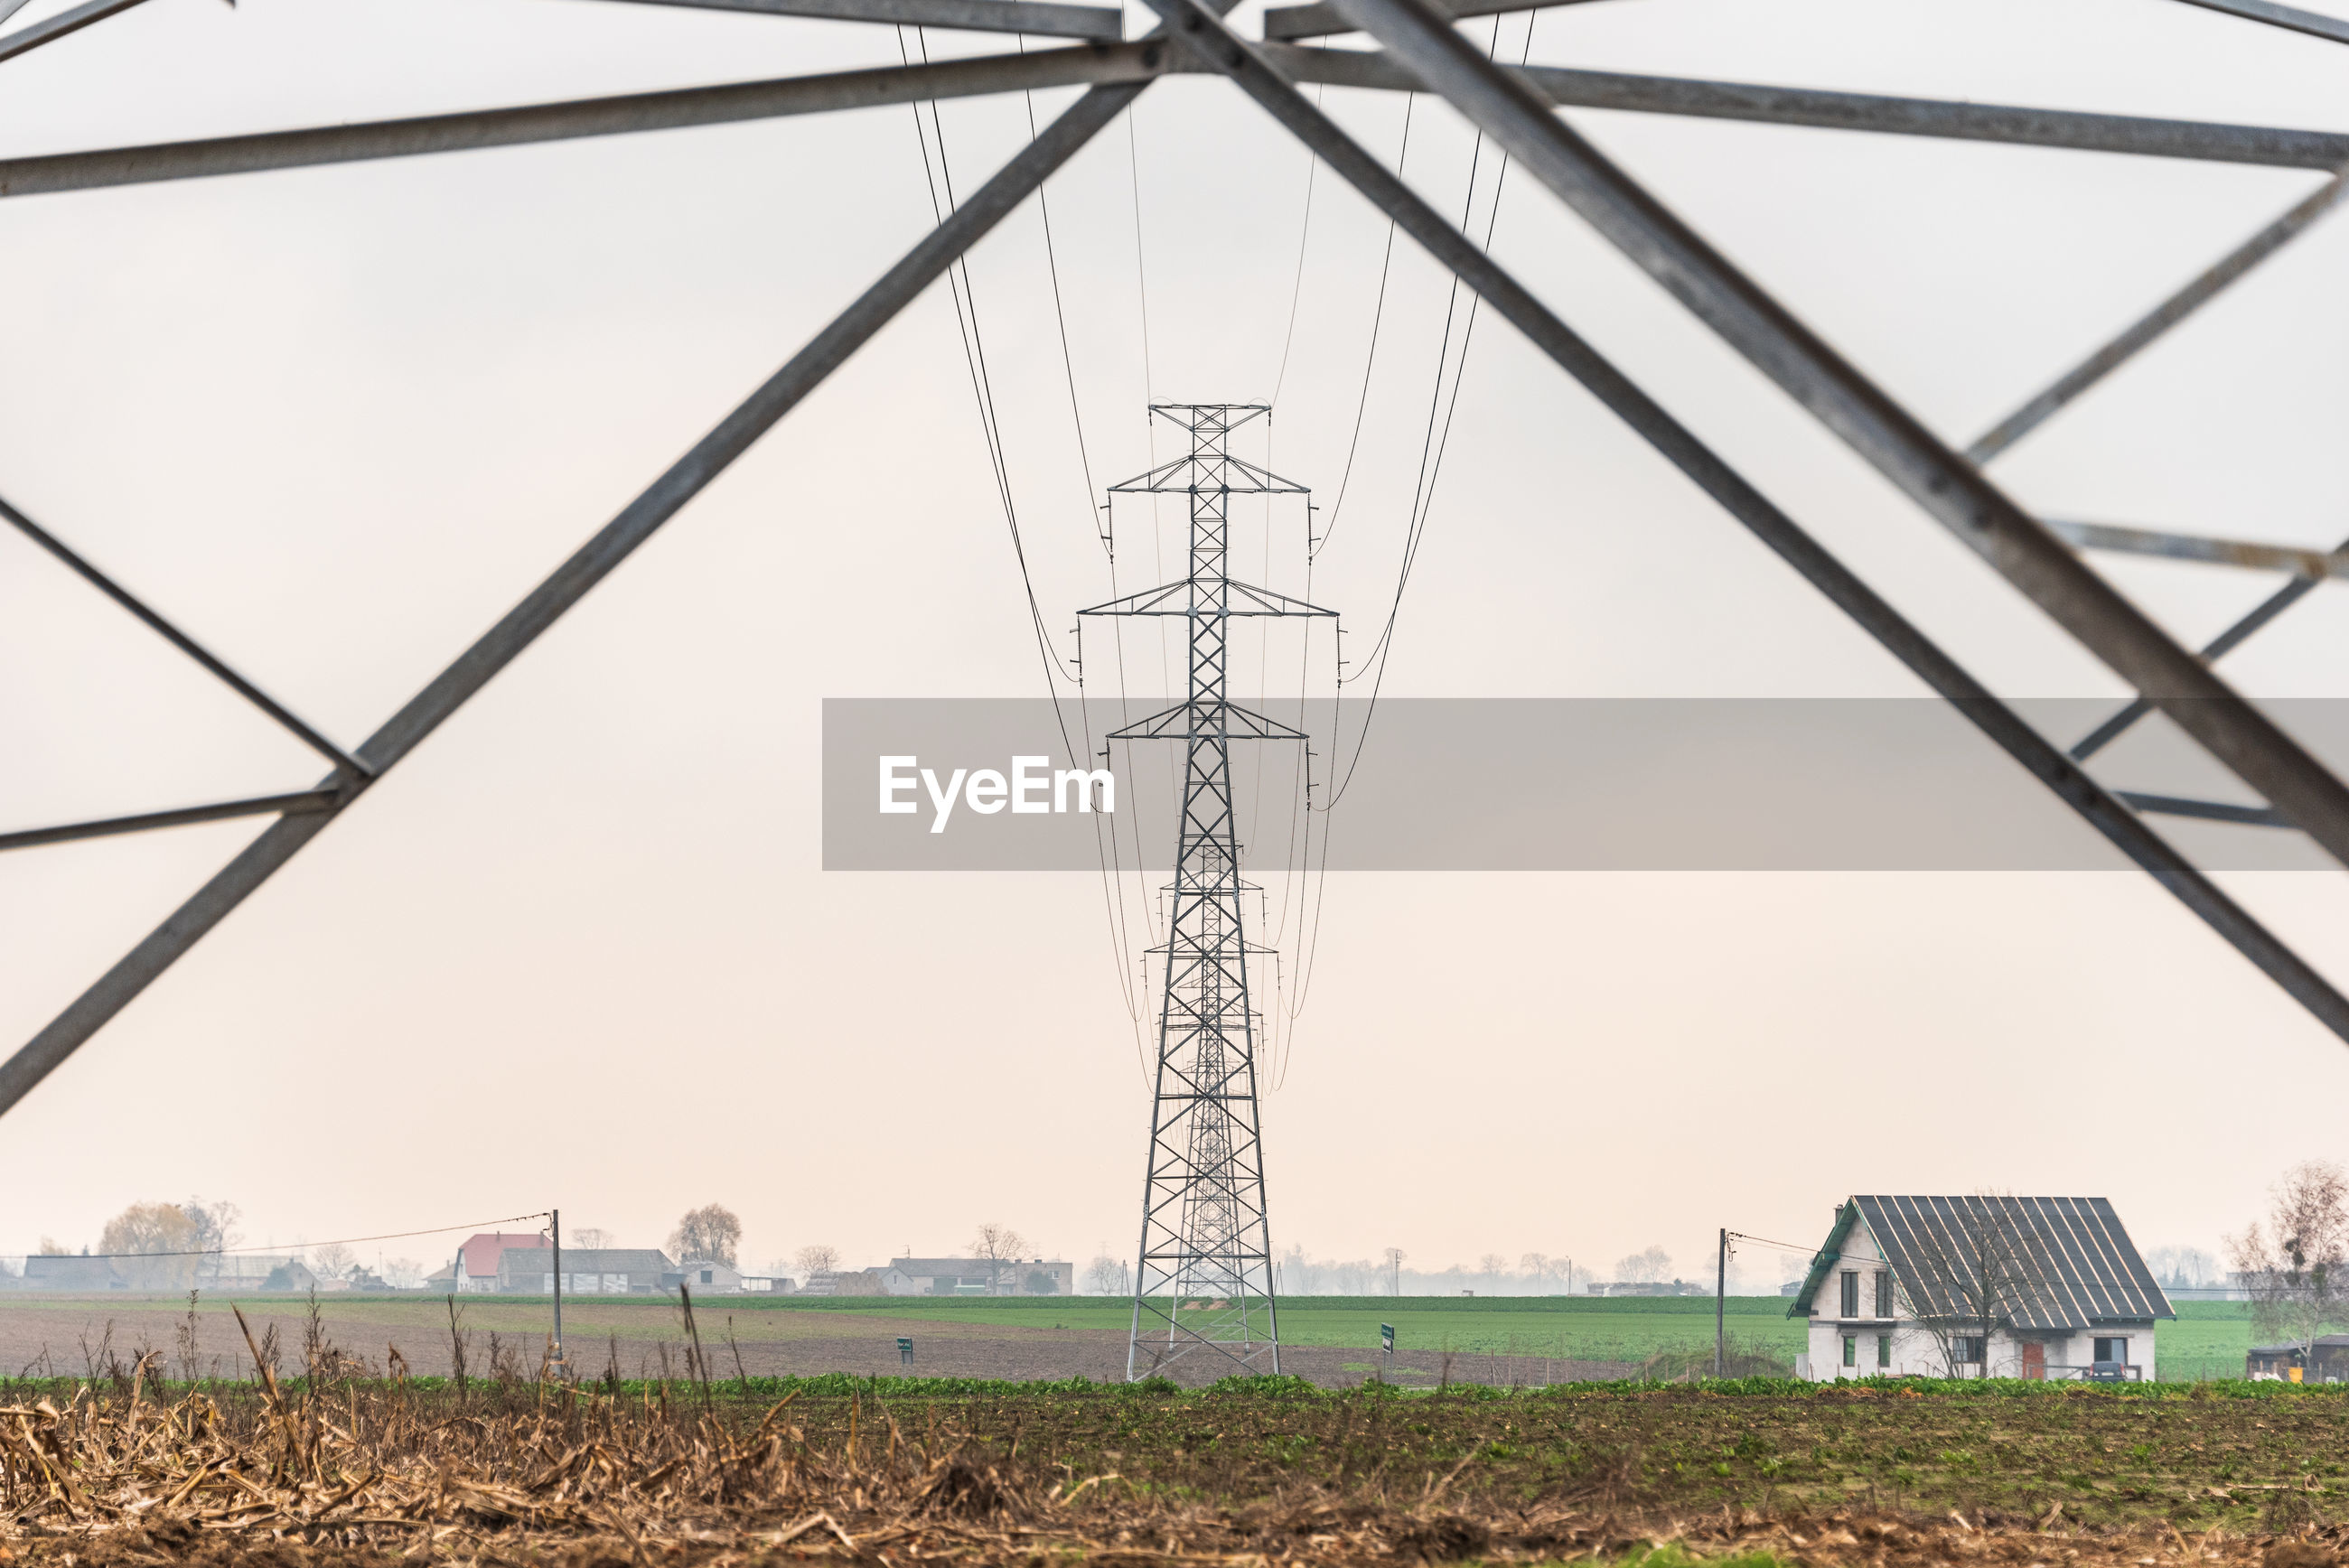 Electricity distribution system. high voltage overhead power line, power pylon, steel lattice tower